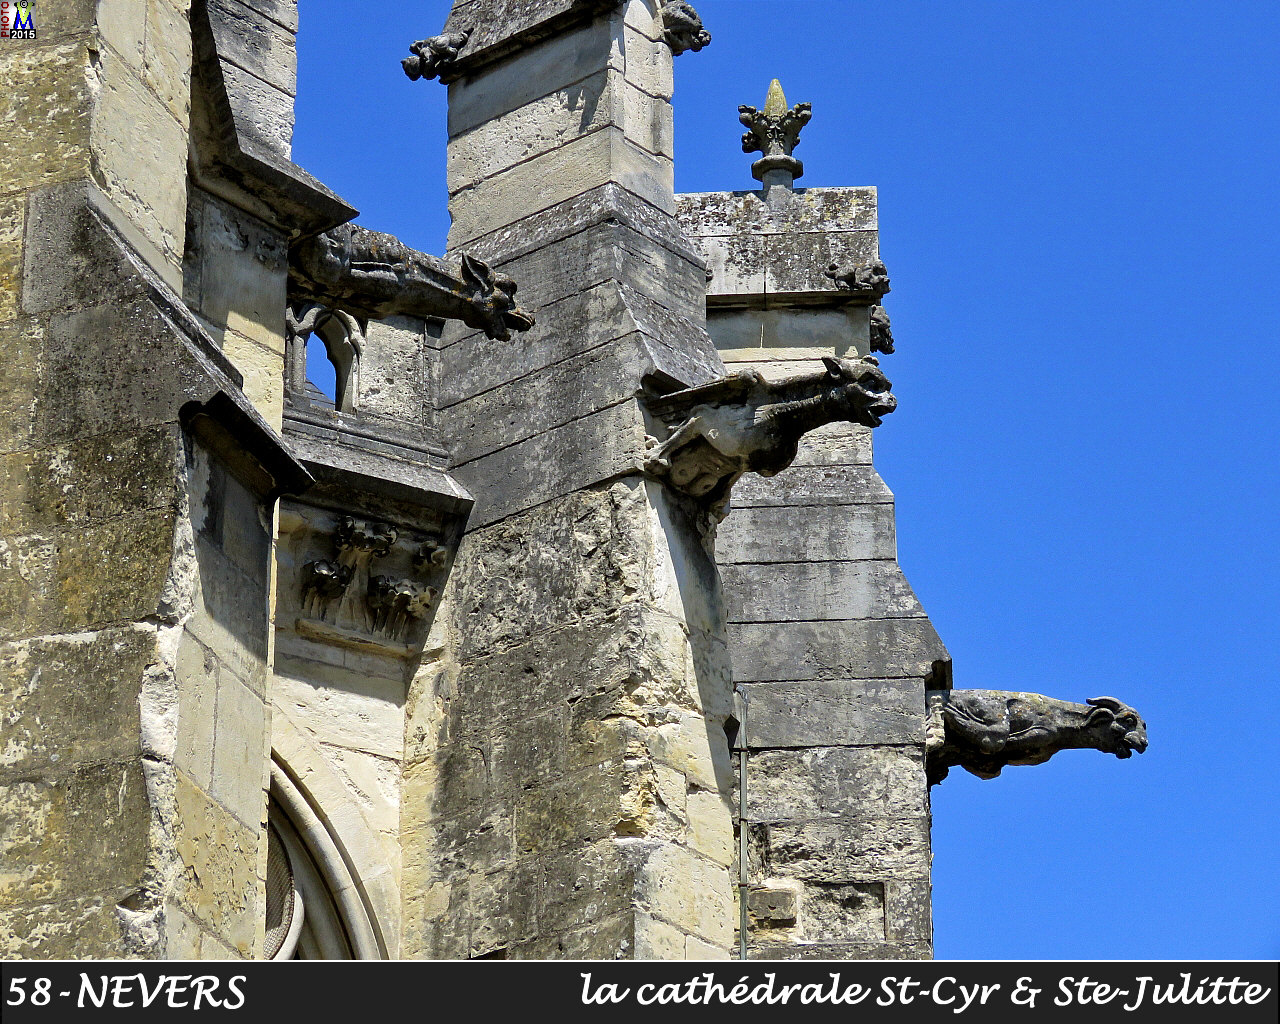 58NEVERS-cathedrale_132.jpg